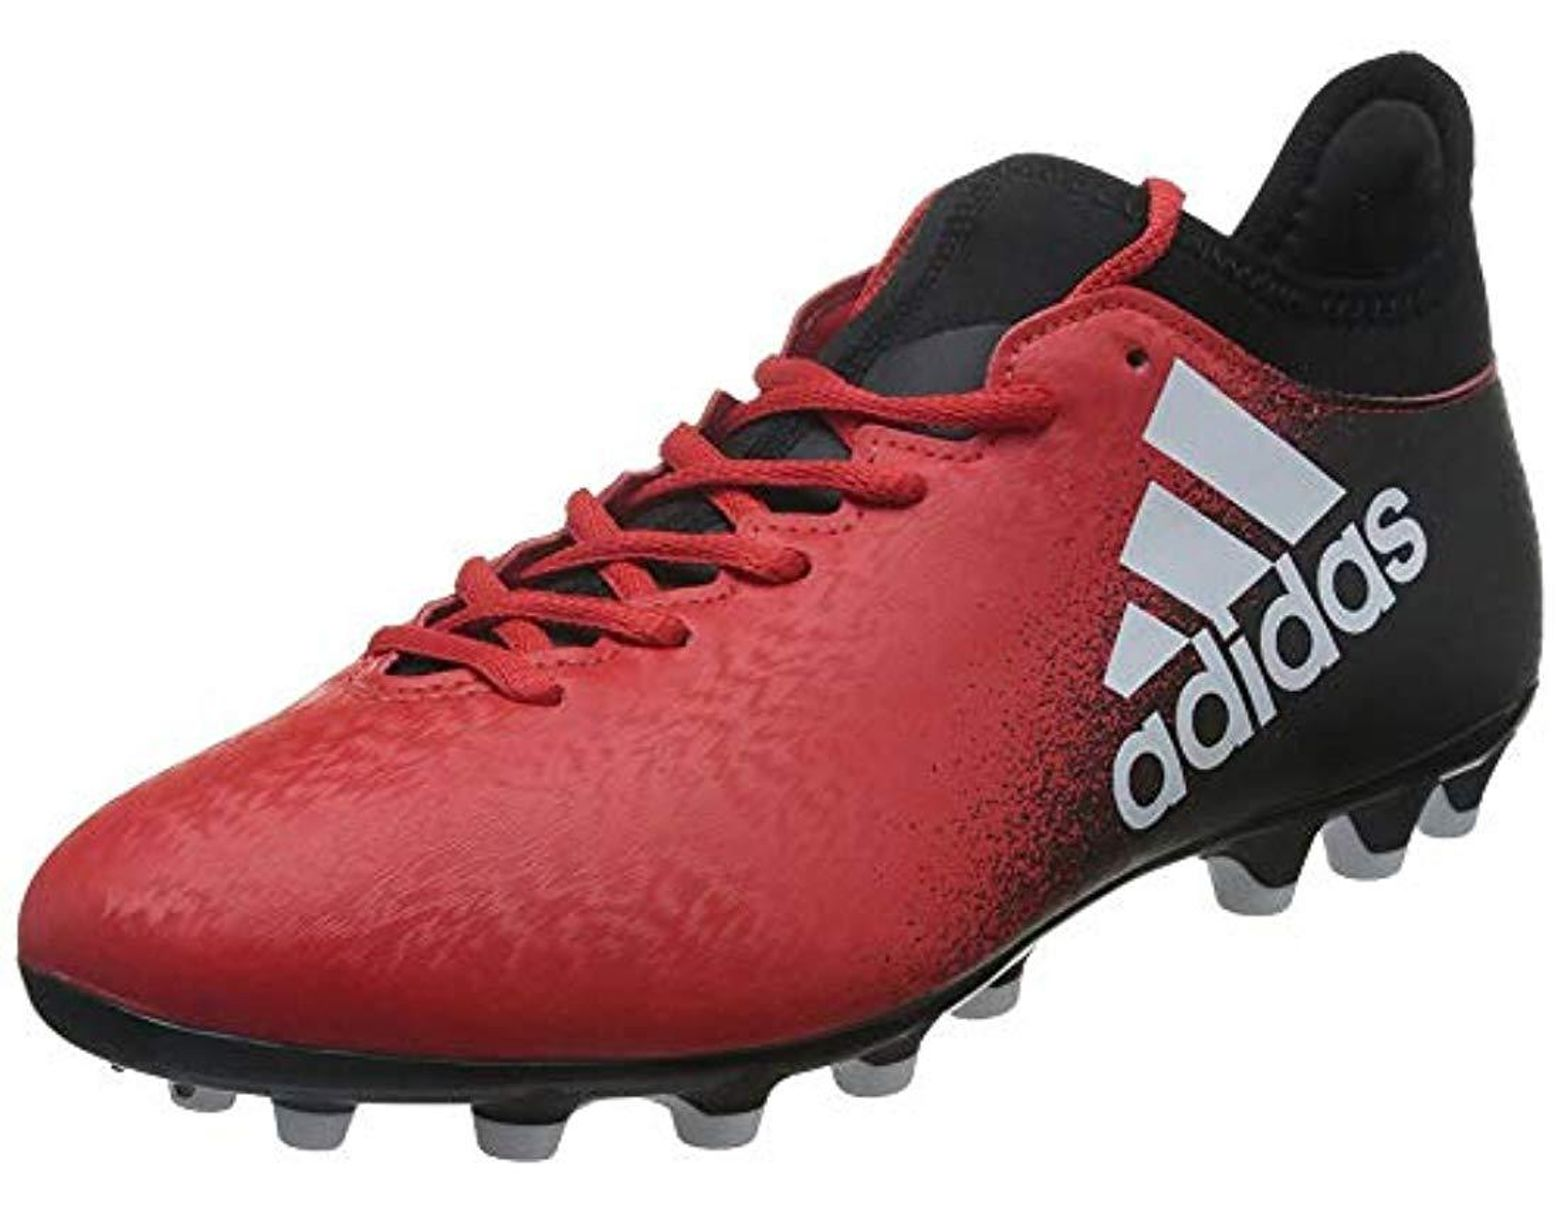 more photos 0c6ae 298d3 adidas X 16.3 Ag Football Boots in Red for Men - Lyst